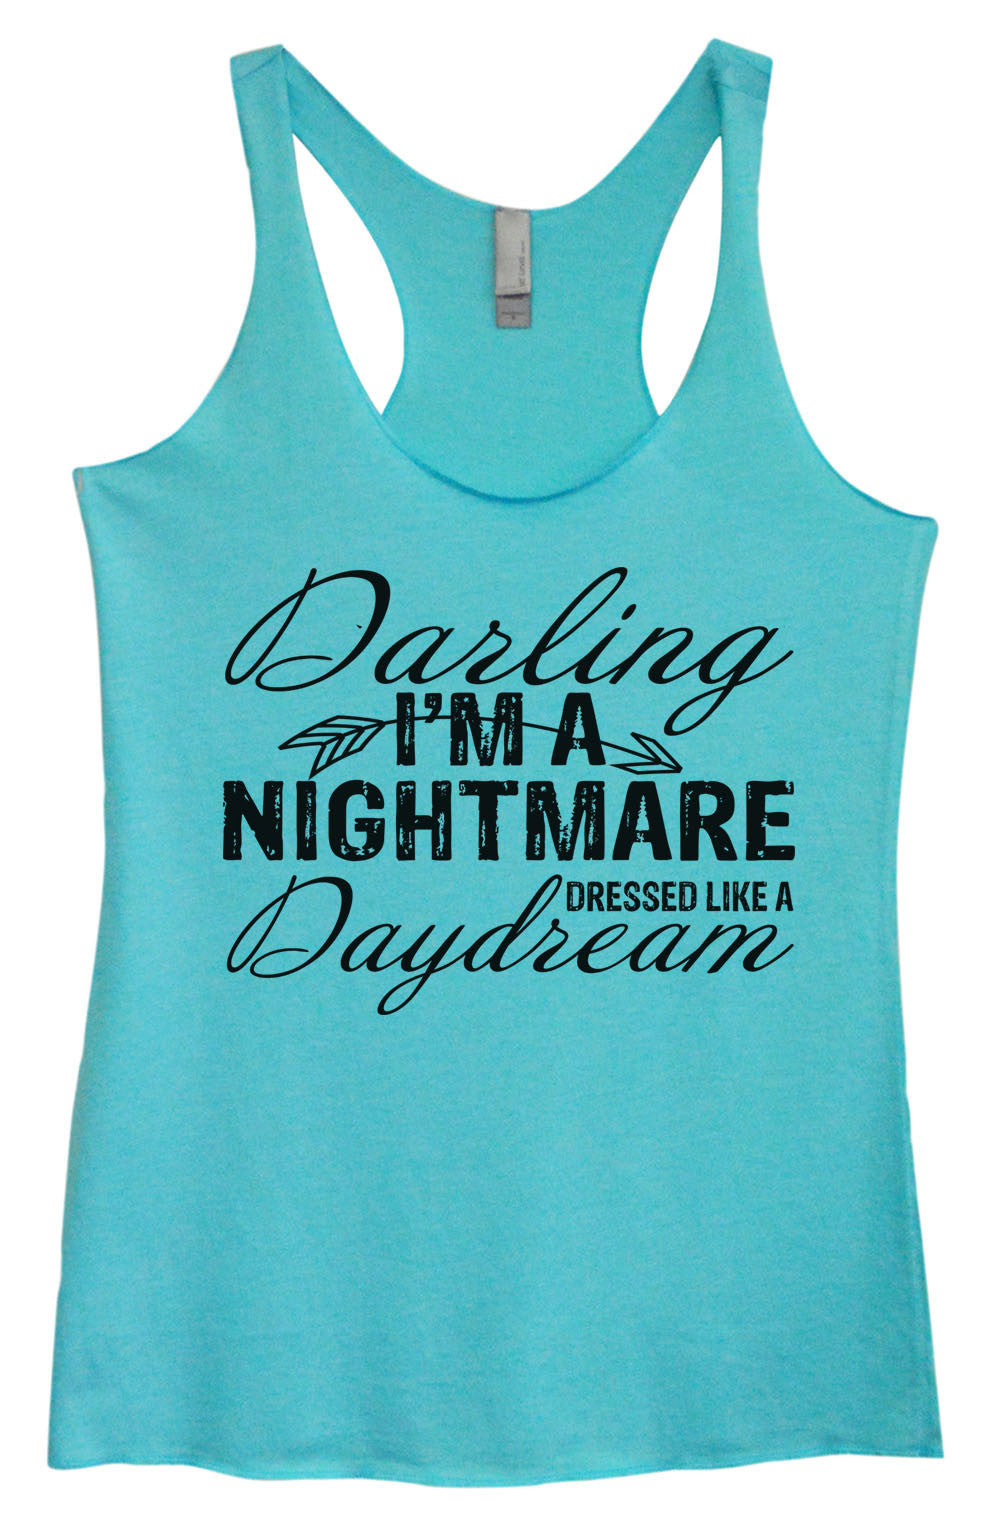 Womens Fashion Triblend Tank Top - Darling I'm A Nightmare Dressed Like A Daydream - Tri-930 - Funny Shirts Tank Tops Burnouts and Triblends  - 3